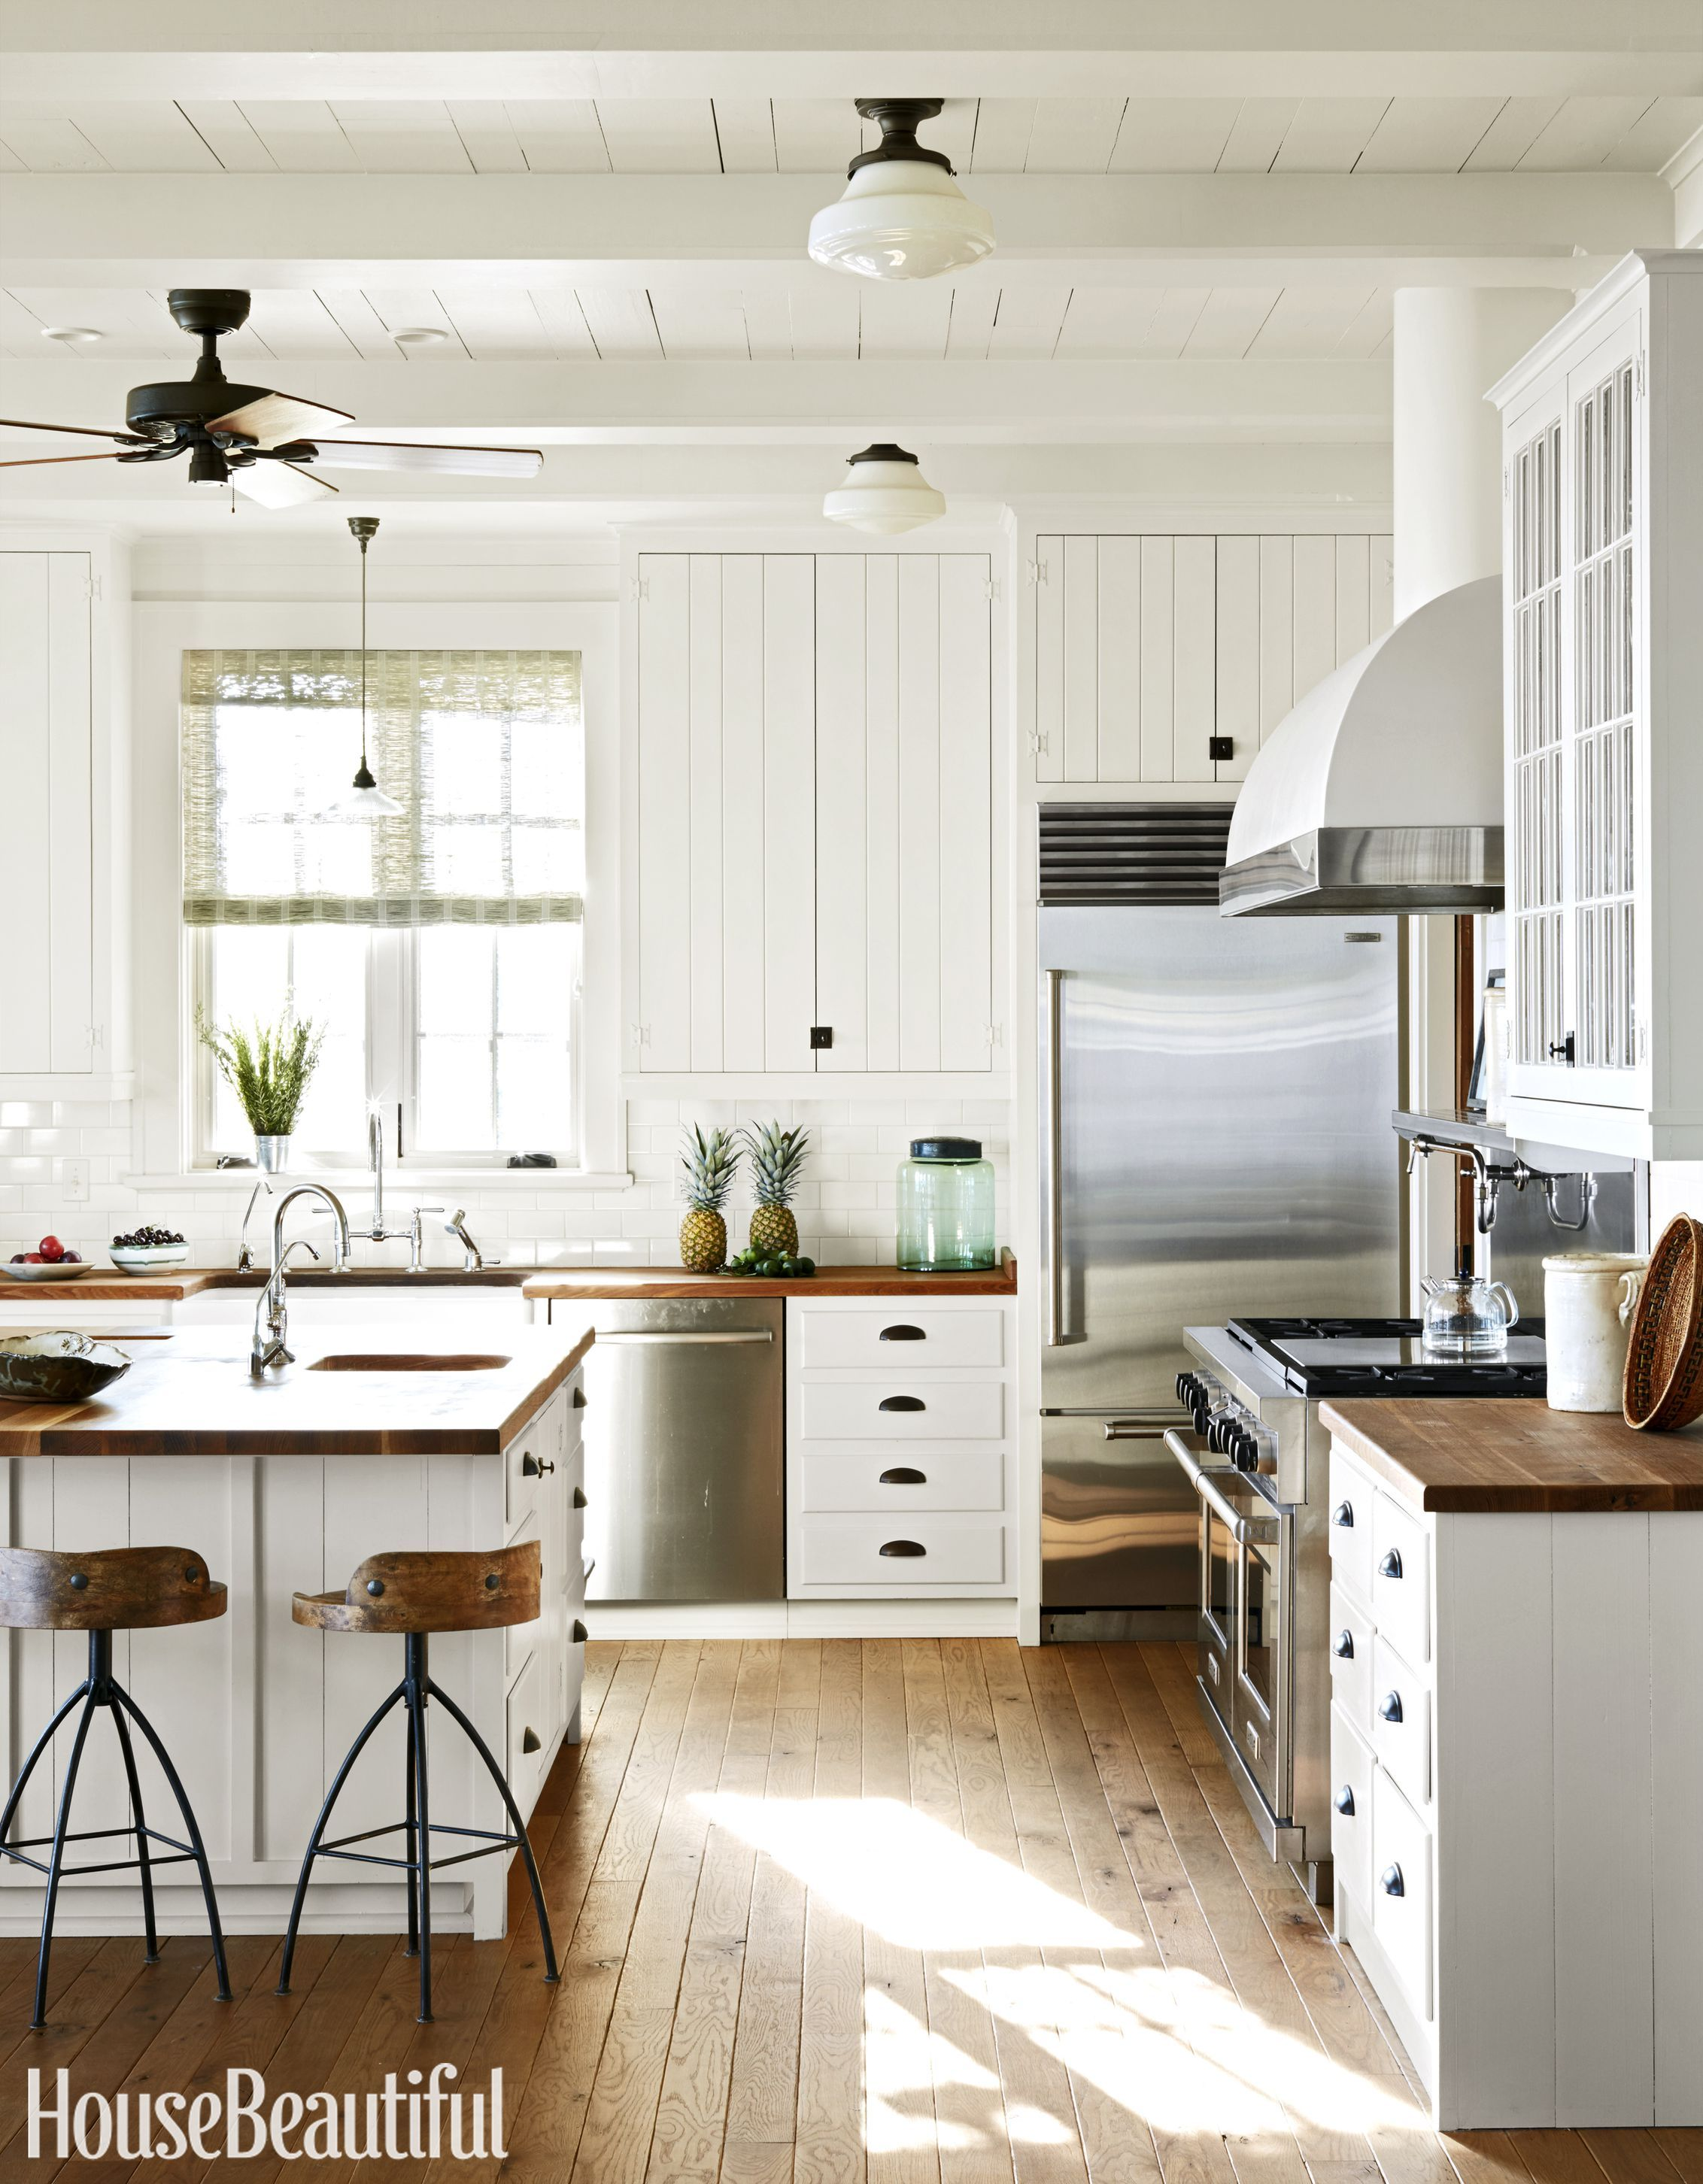 10 Decor Items You Need In Your Rustic Kitchen Pickled Barrel